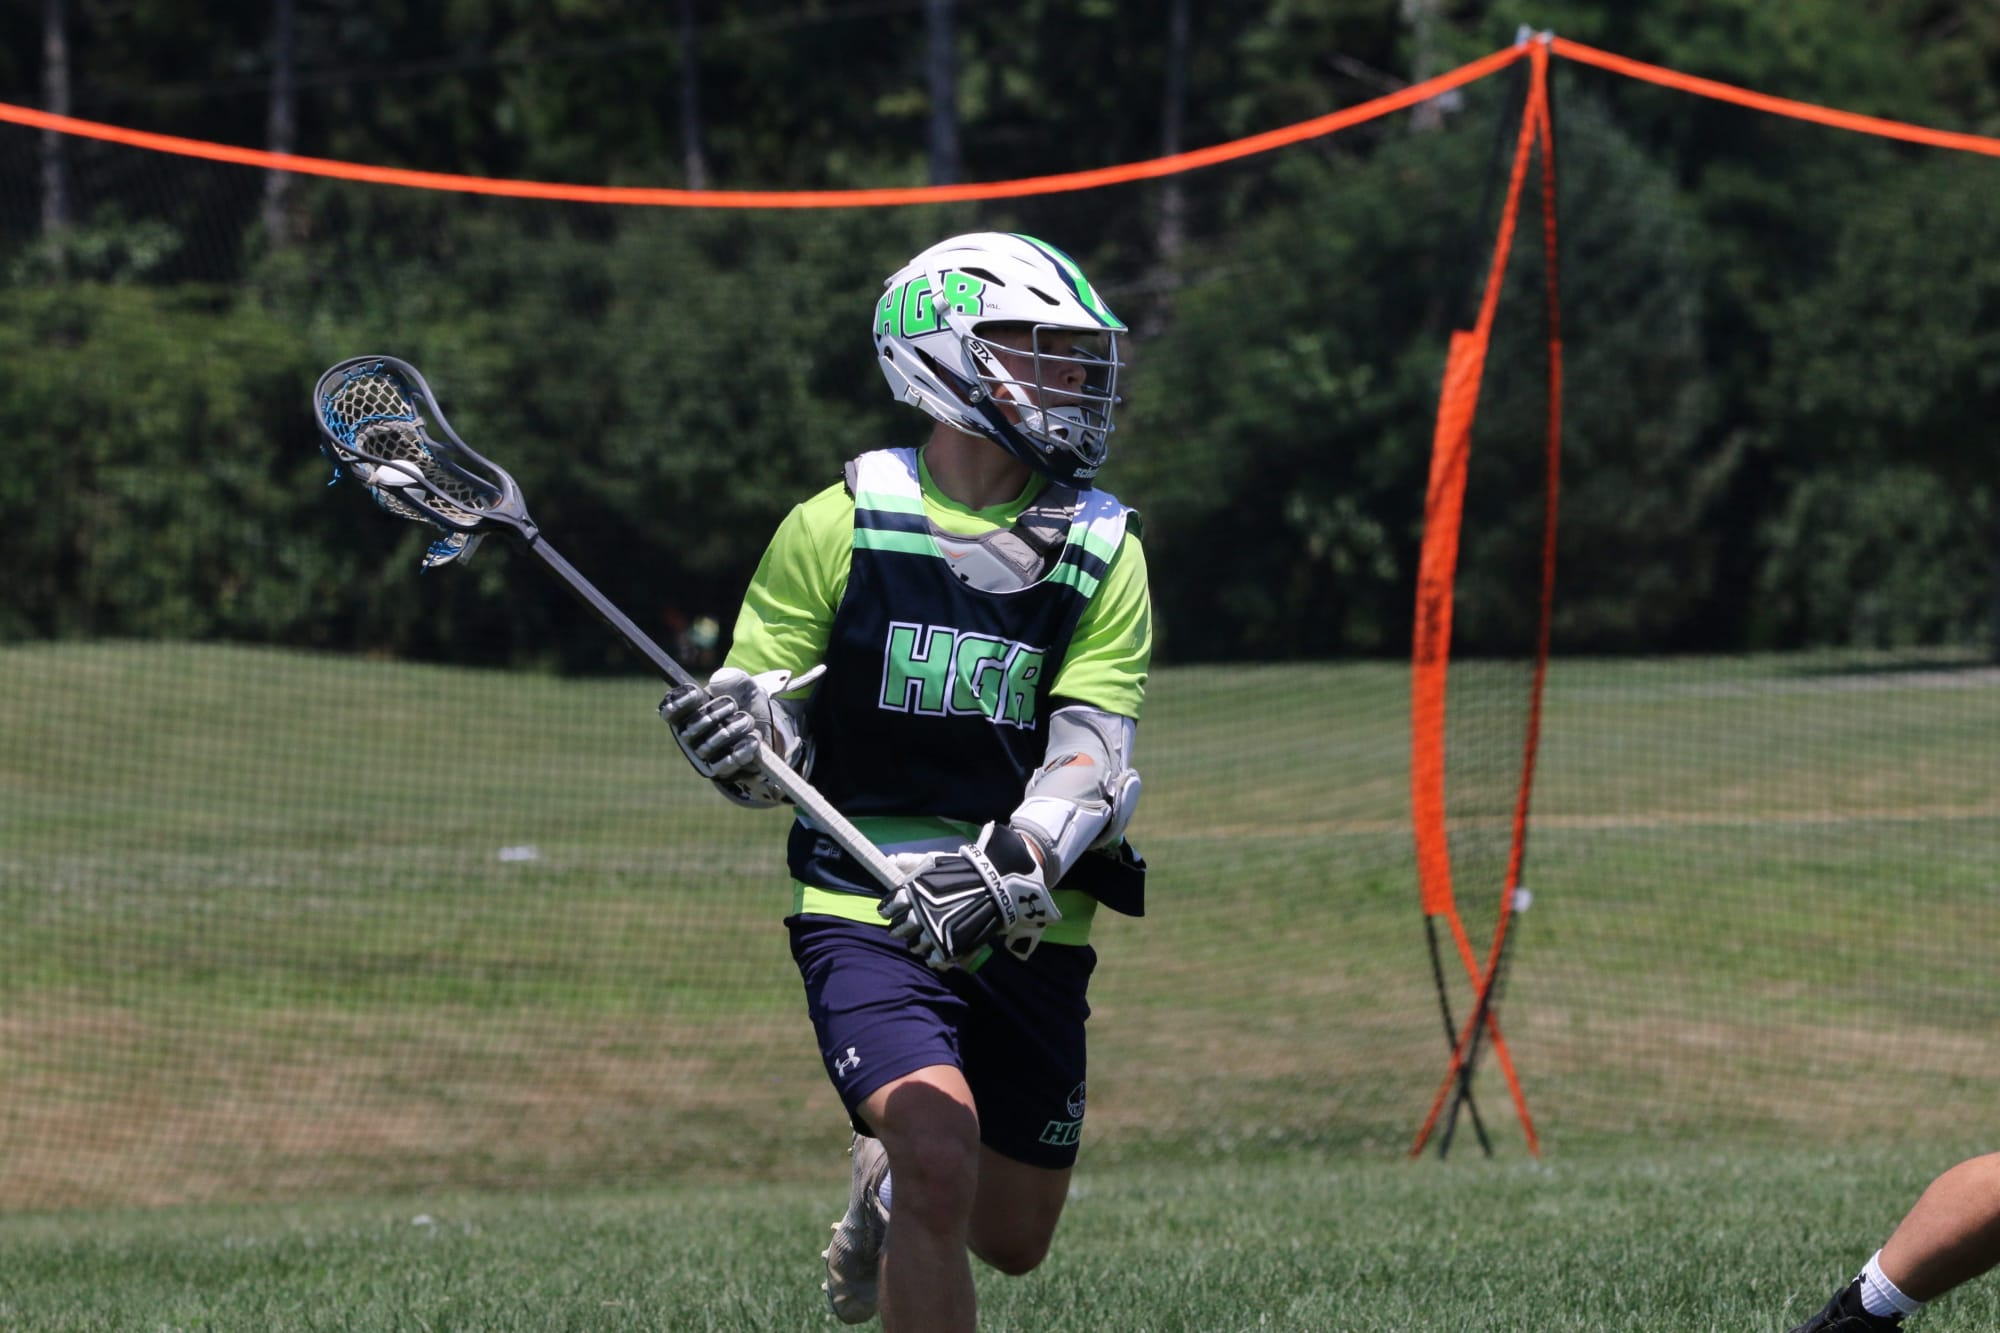 Massachusetts high schooler Billy O'Neill is looking for a field lacrosse program with a box lacrosse feel for his college decision.